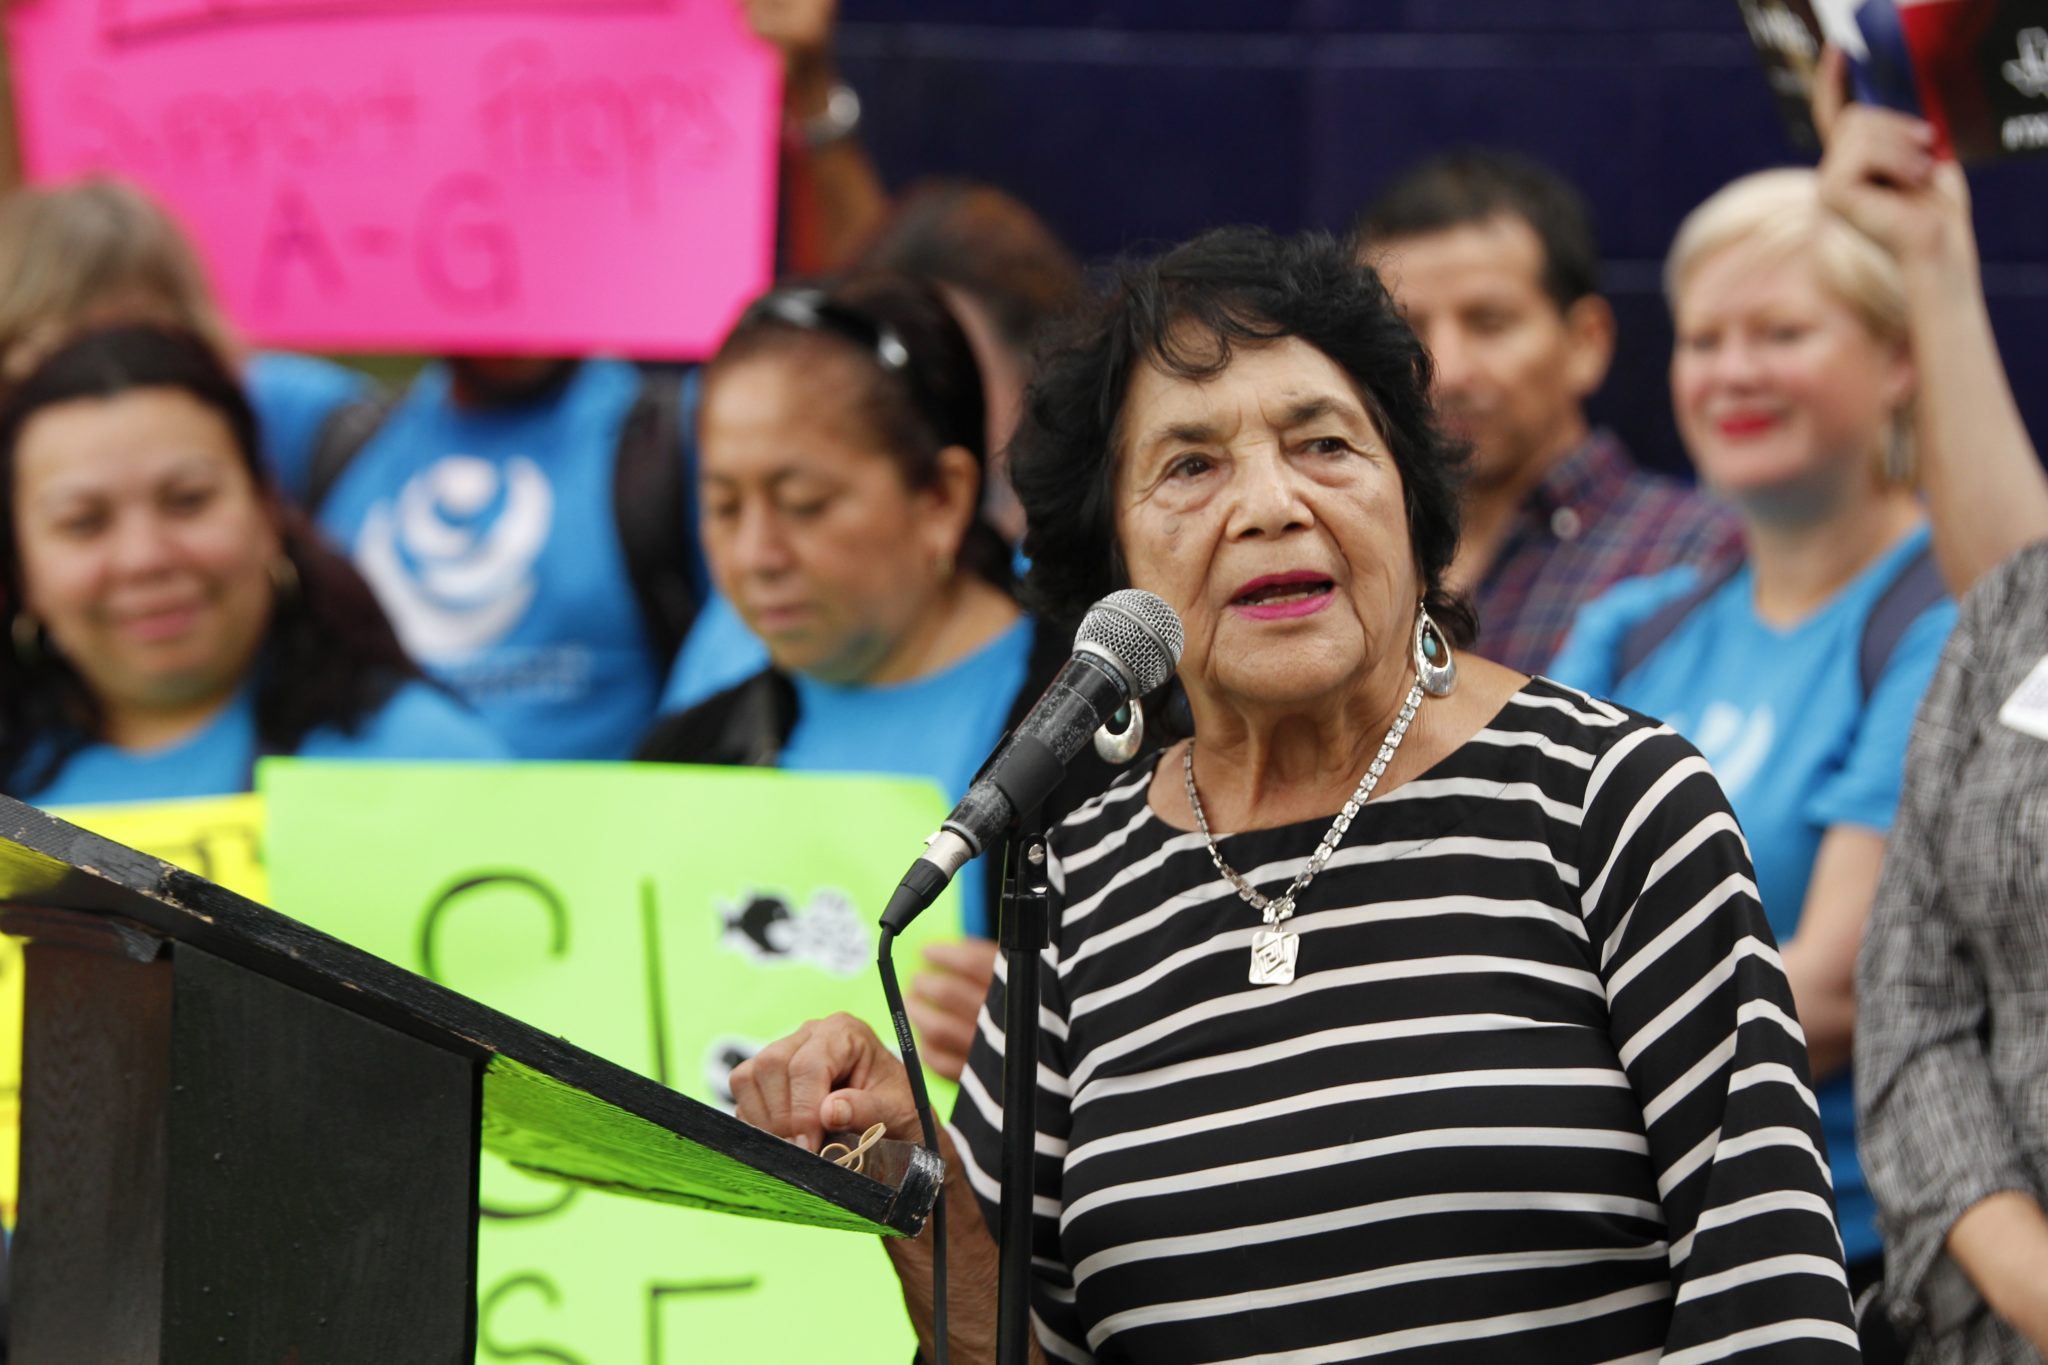 Dolores Huerta is Still Knocking on Doors and Registering Voters at 88